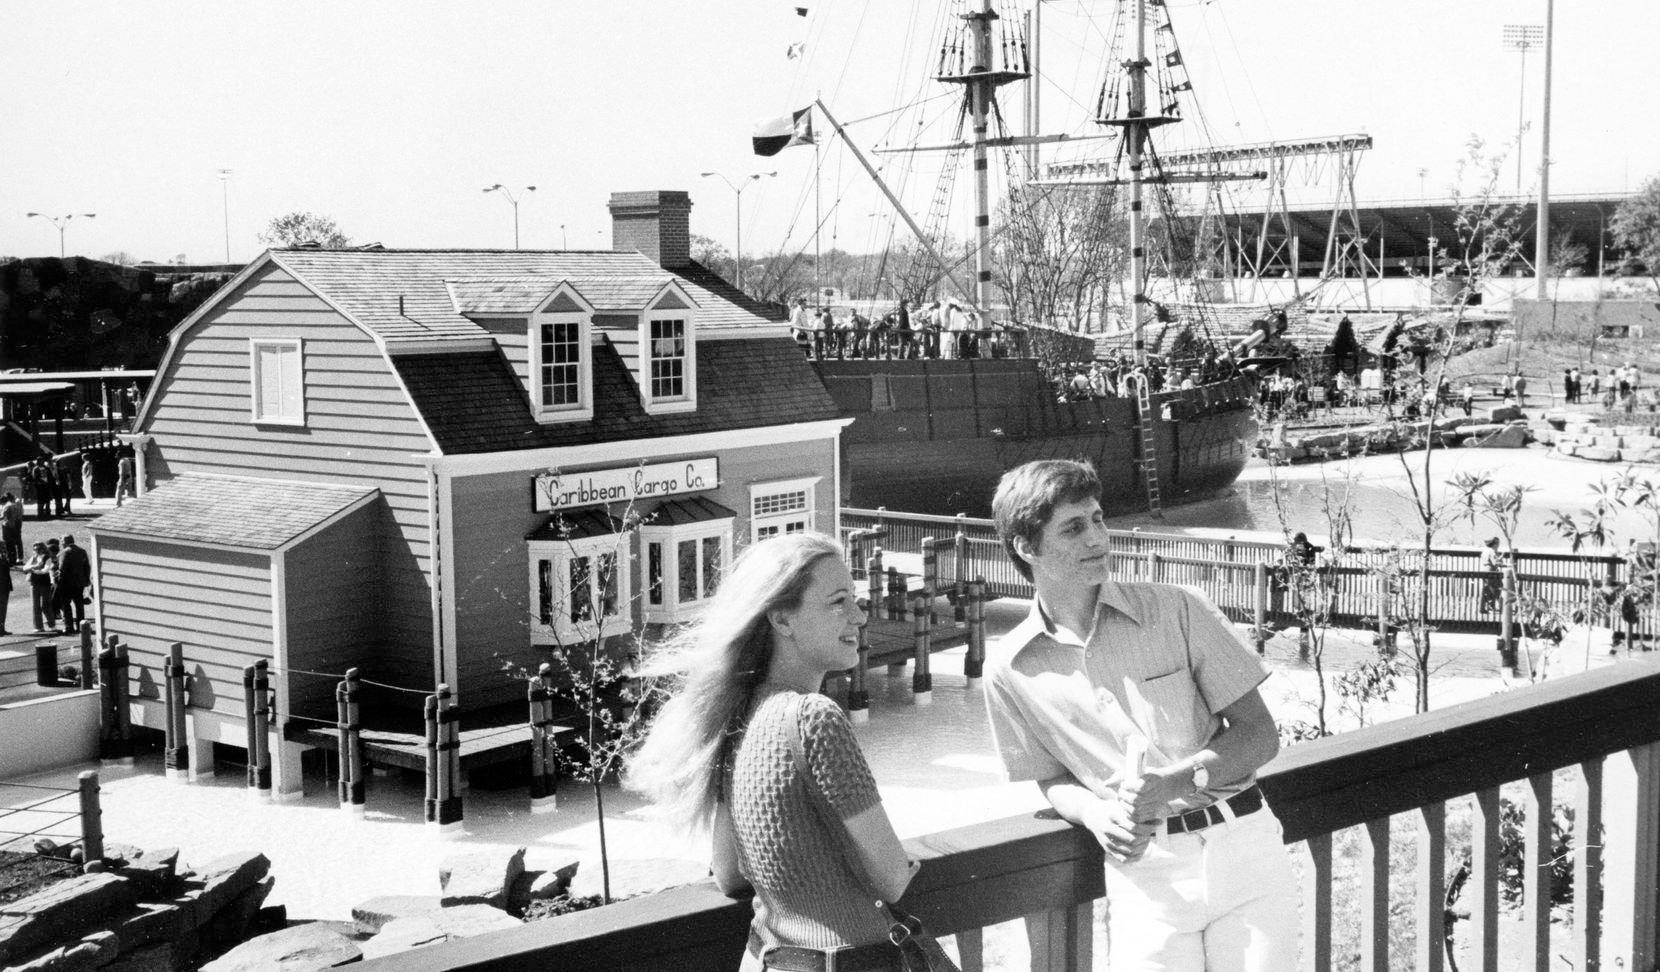 Visitors enjoyed the sunshine on opening day of Seven Seas on March 18, 1972.